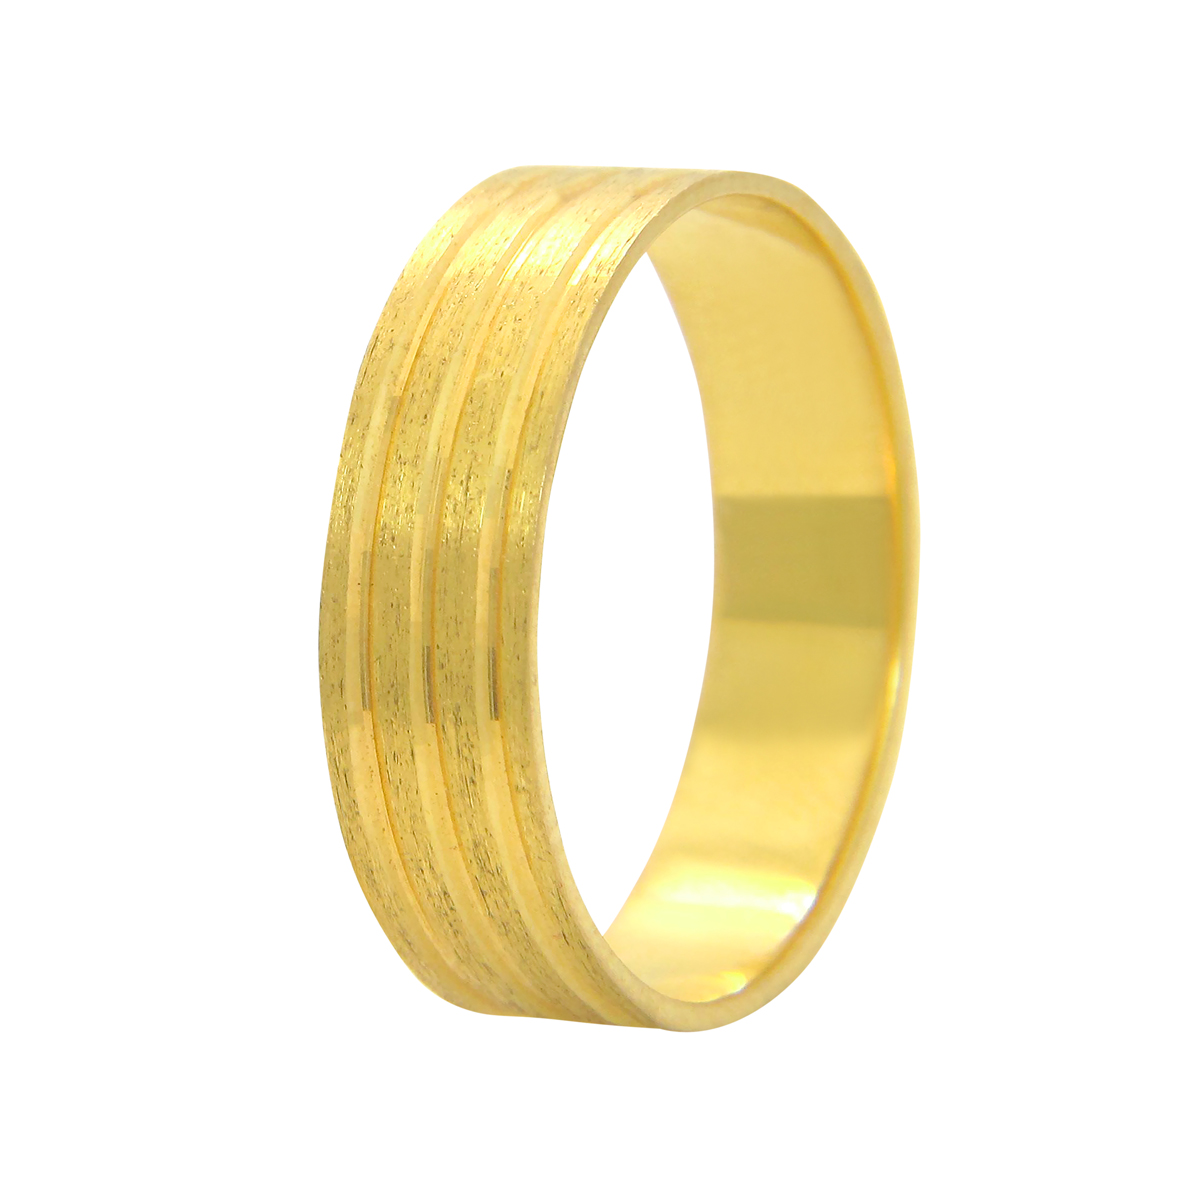 Popley 22Kt Gold Bandhan Ring - A85